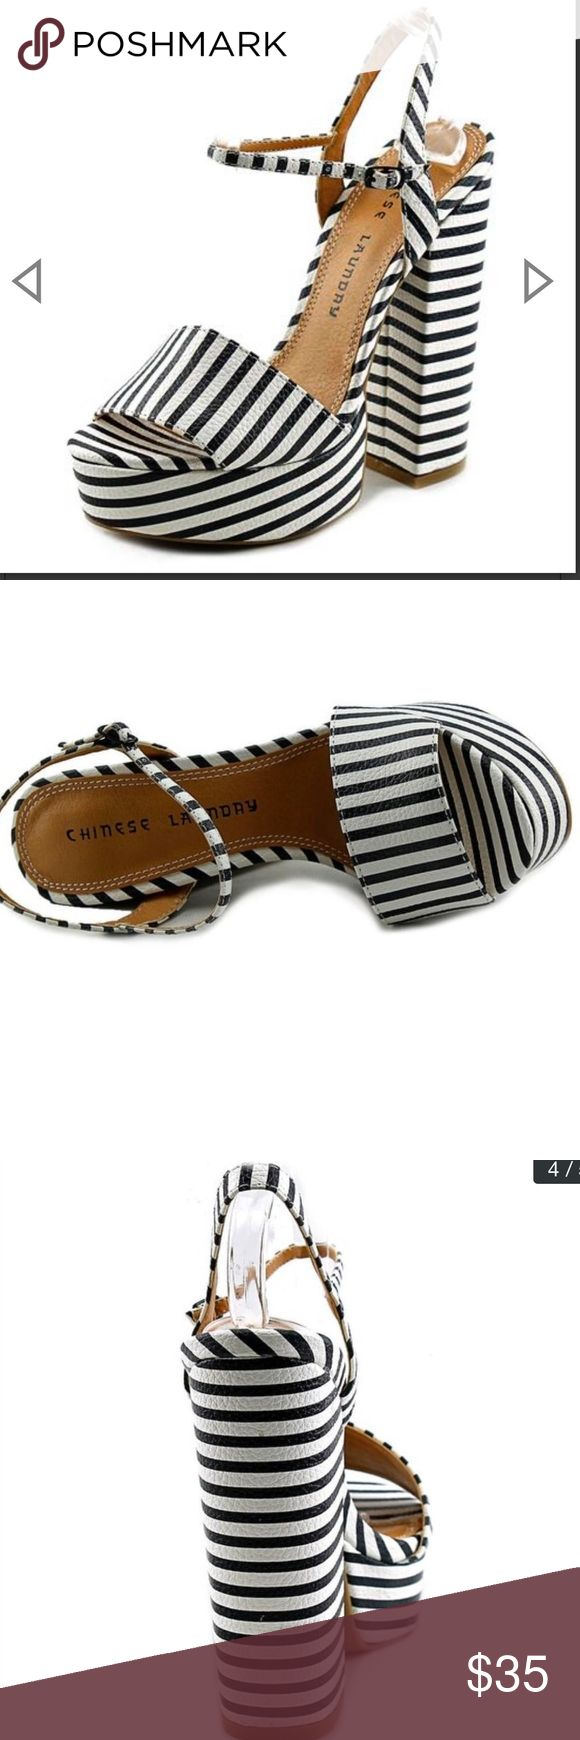 """Chinese Laundry Women's high heel 6 """" with platform black and white sandal brand new Chinese Laundry Shoes"""